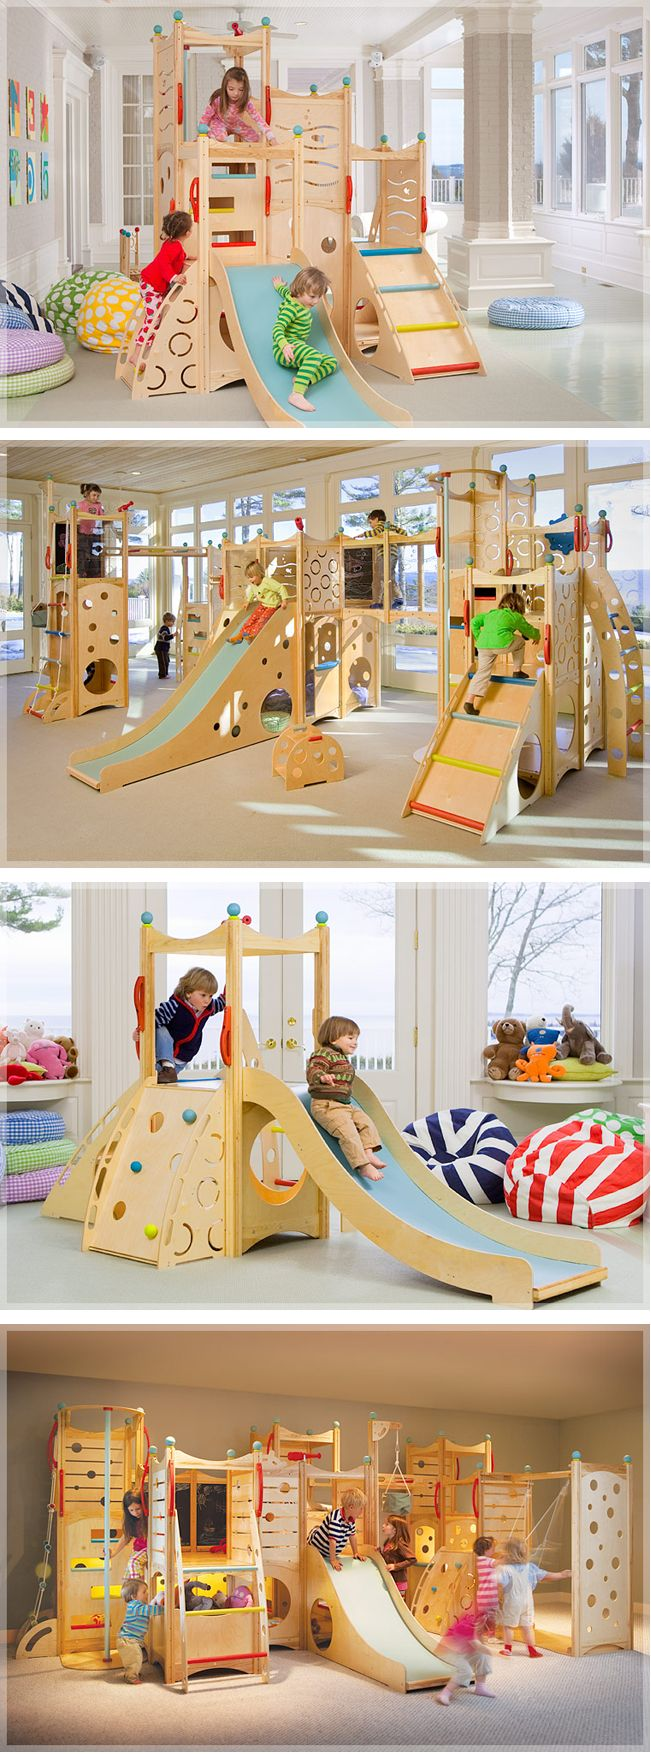 Awesome indoor play area! - Okay, this is amazing...all the kids would want to come over!